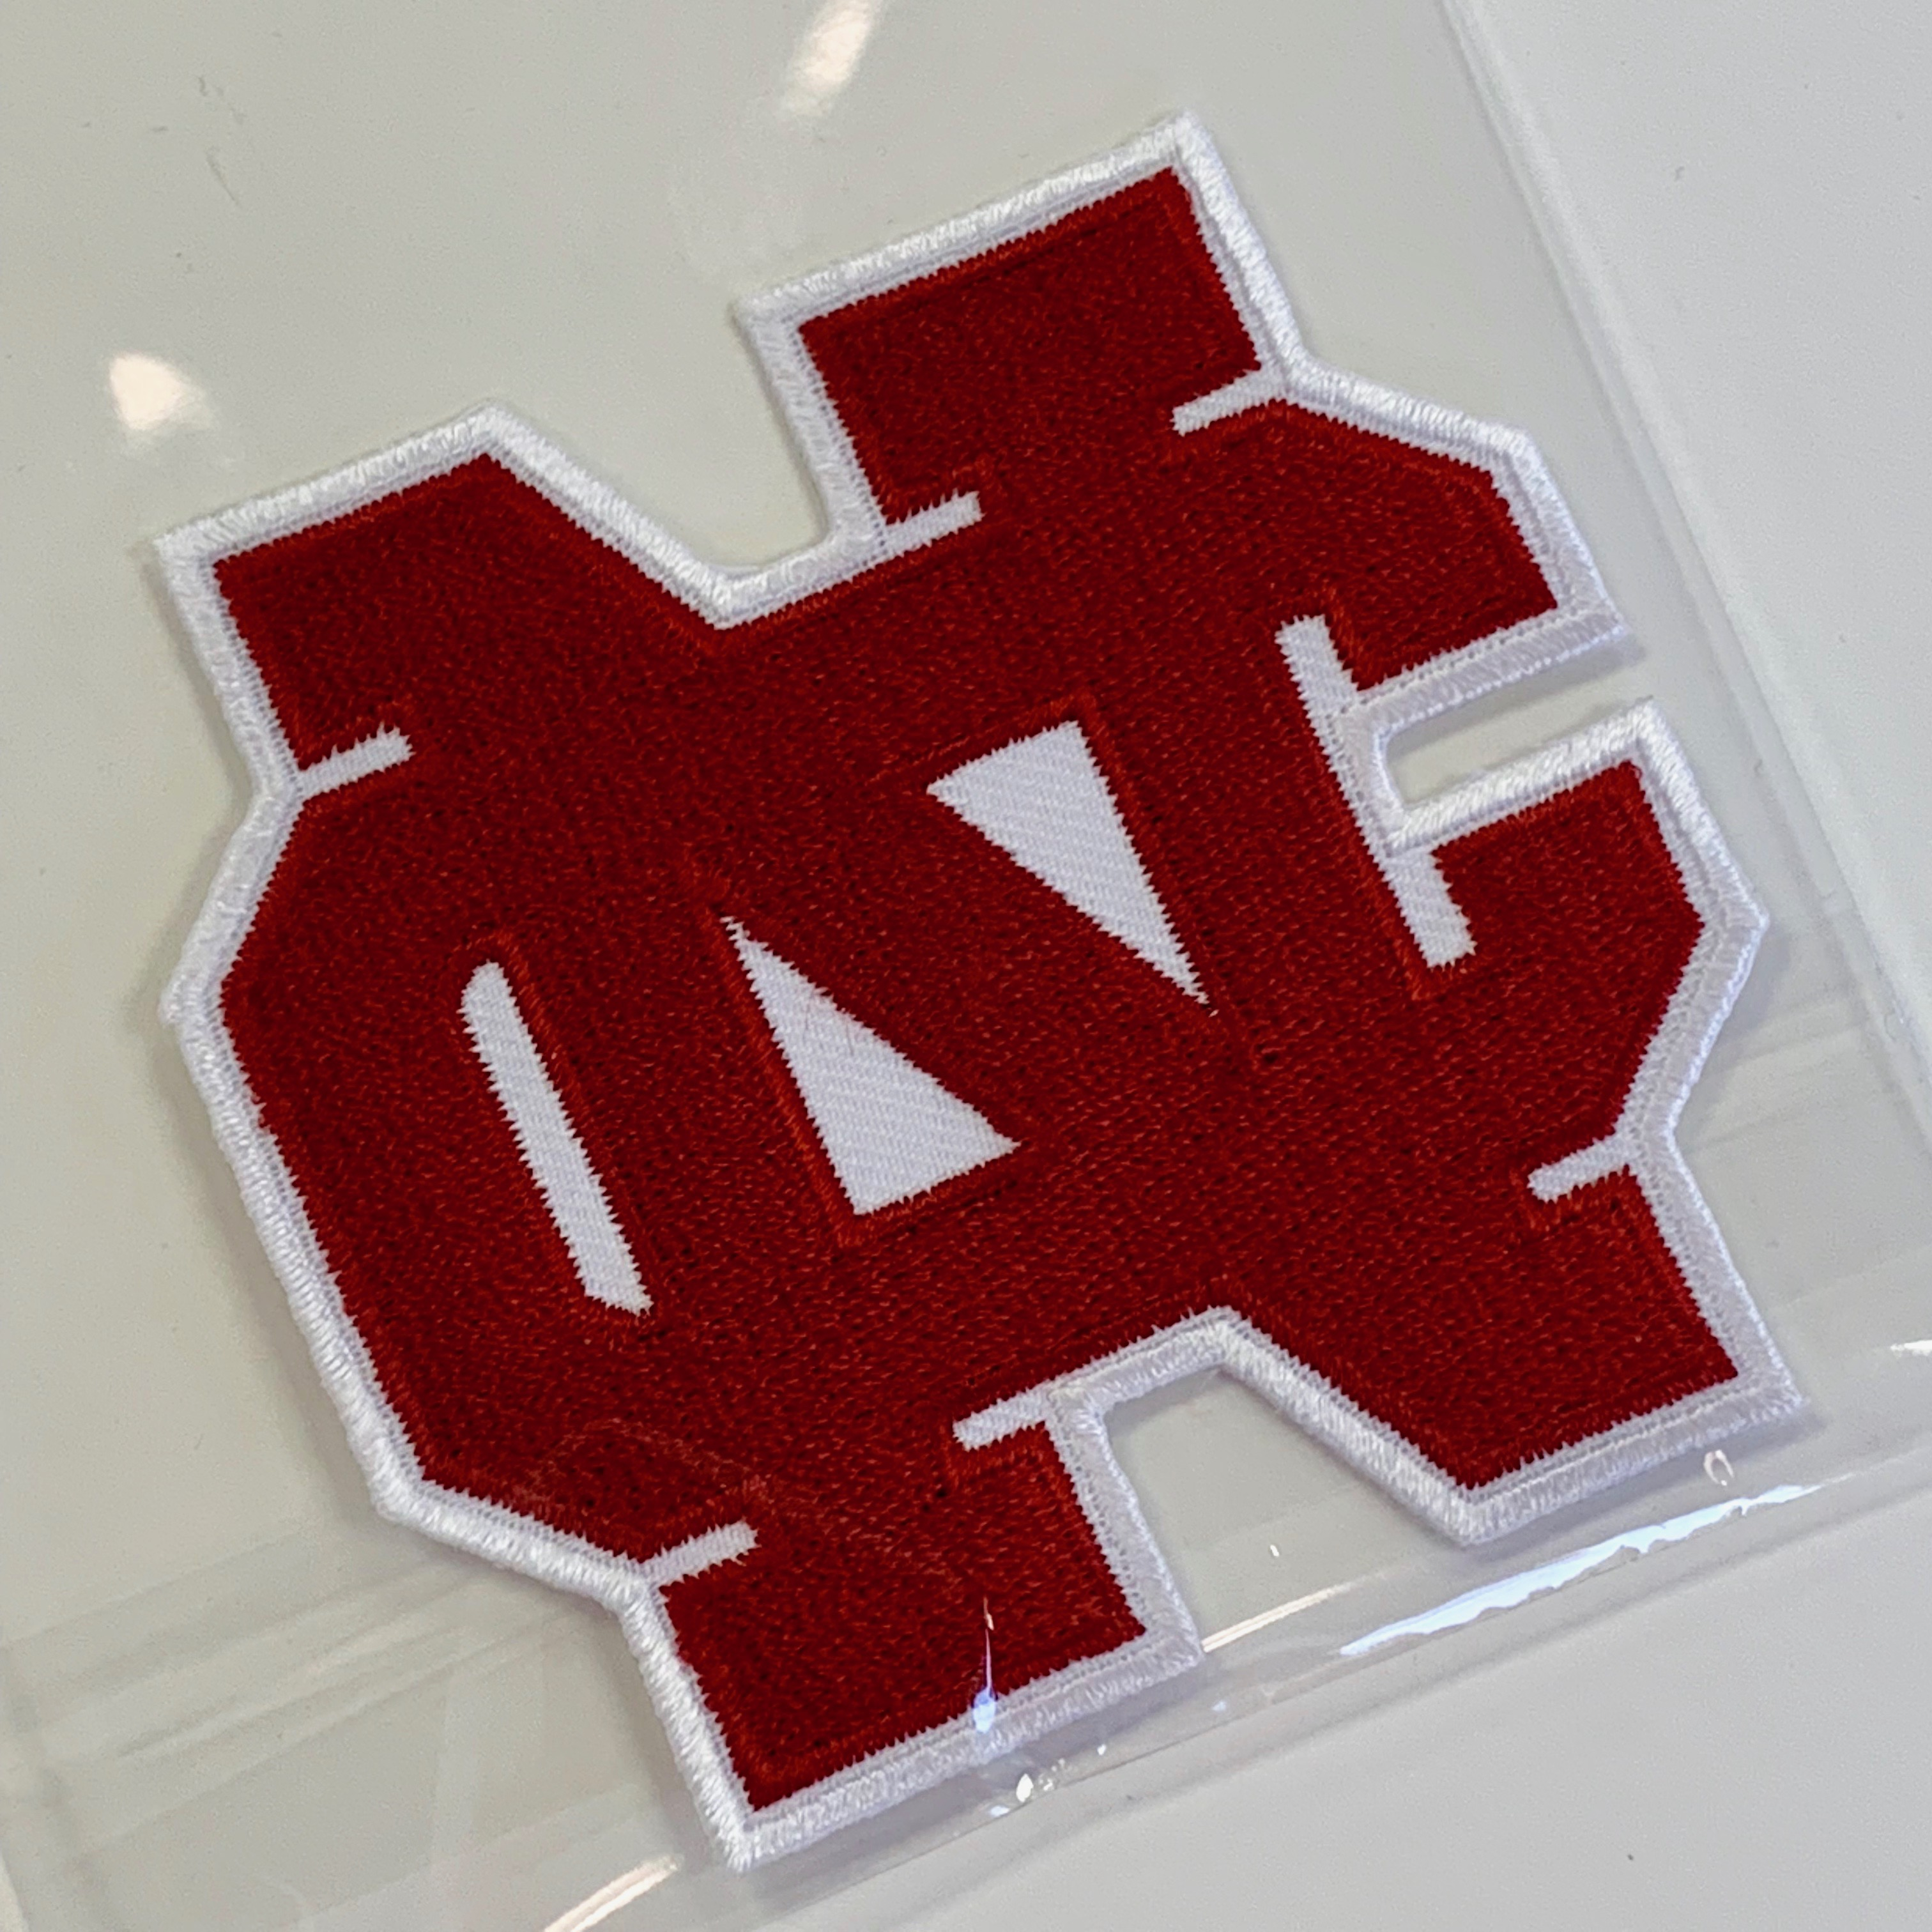 Alternative Image for the North Central College Embroidered Patch product